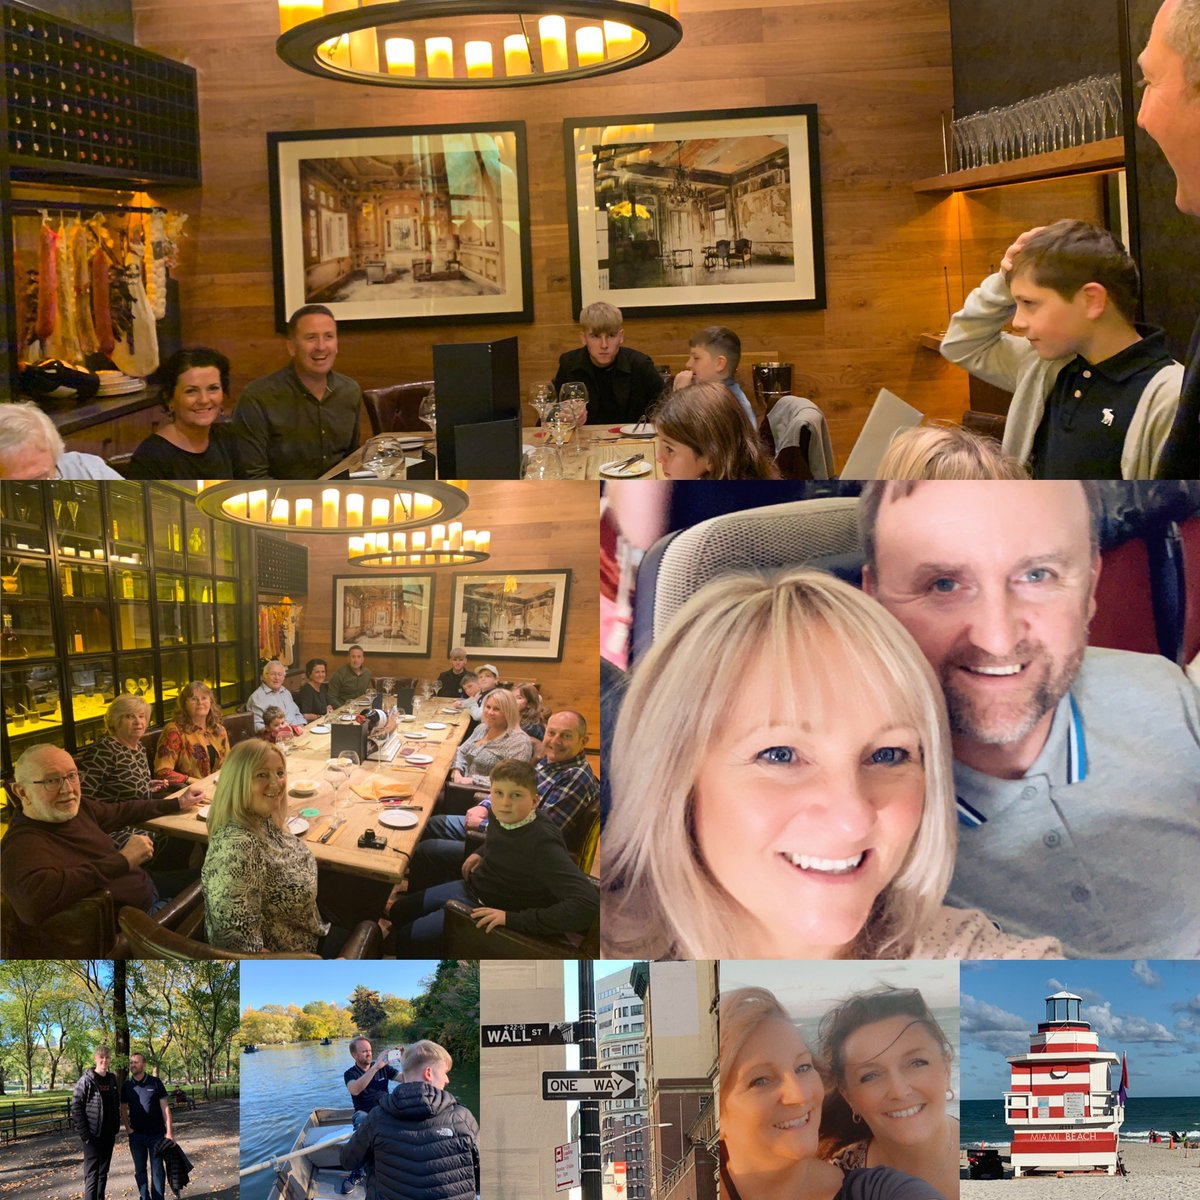 Wow #2019 what a year #family #friends #business #travel #newfriends #newplaces #Tenerife #majorca #cork #NewYork #40thbirthday #18thbirthday #JerseyCity #Miami #celebrations #50thbirthday #newoffice #milestones #drivingtests #engagements #parties #publications #awards #cheerspic.twitter.com/v1LKEz71rc